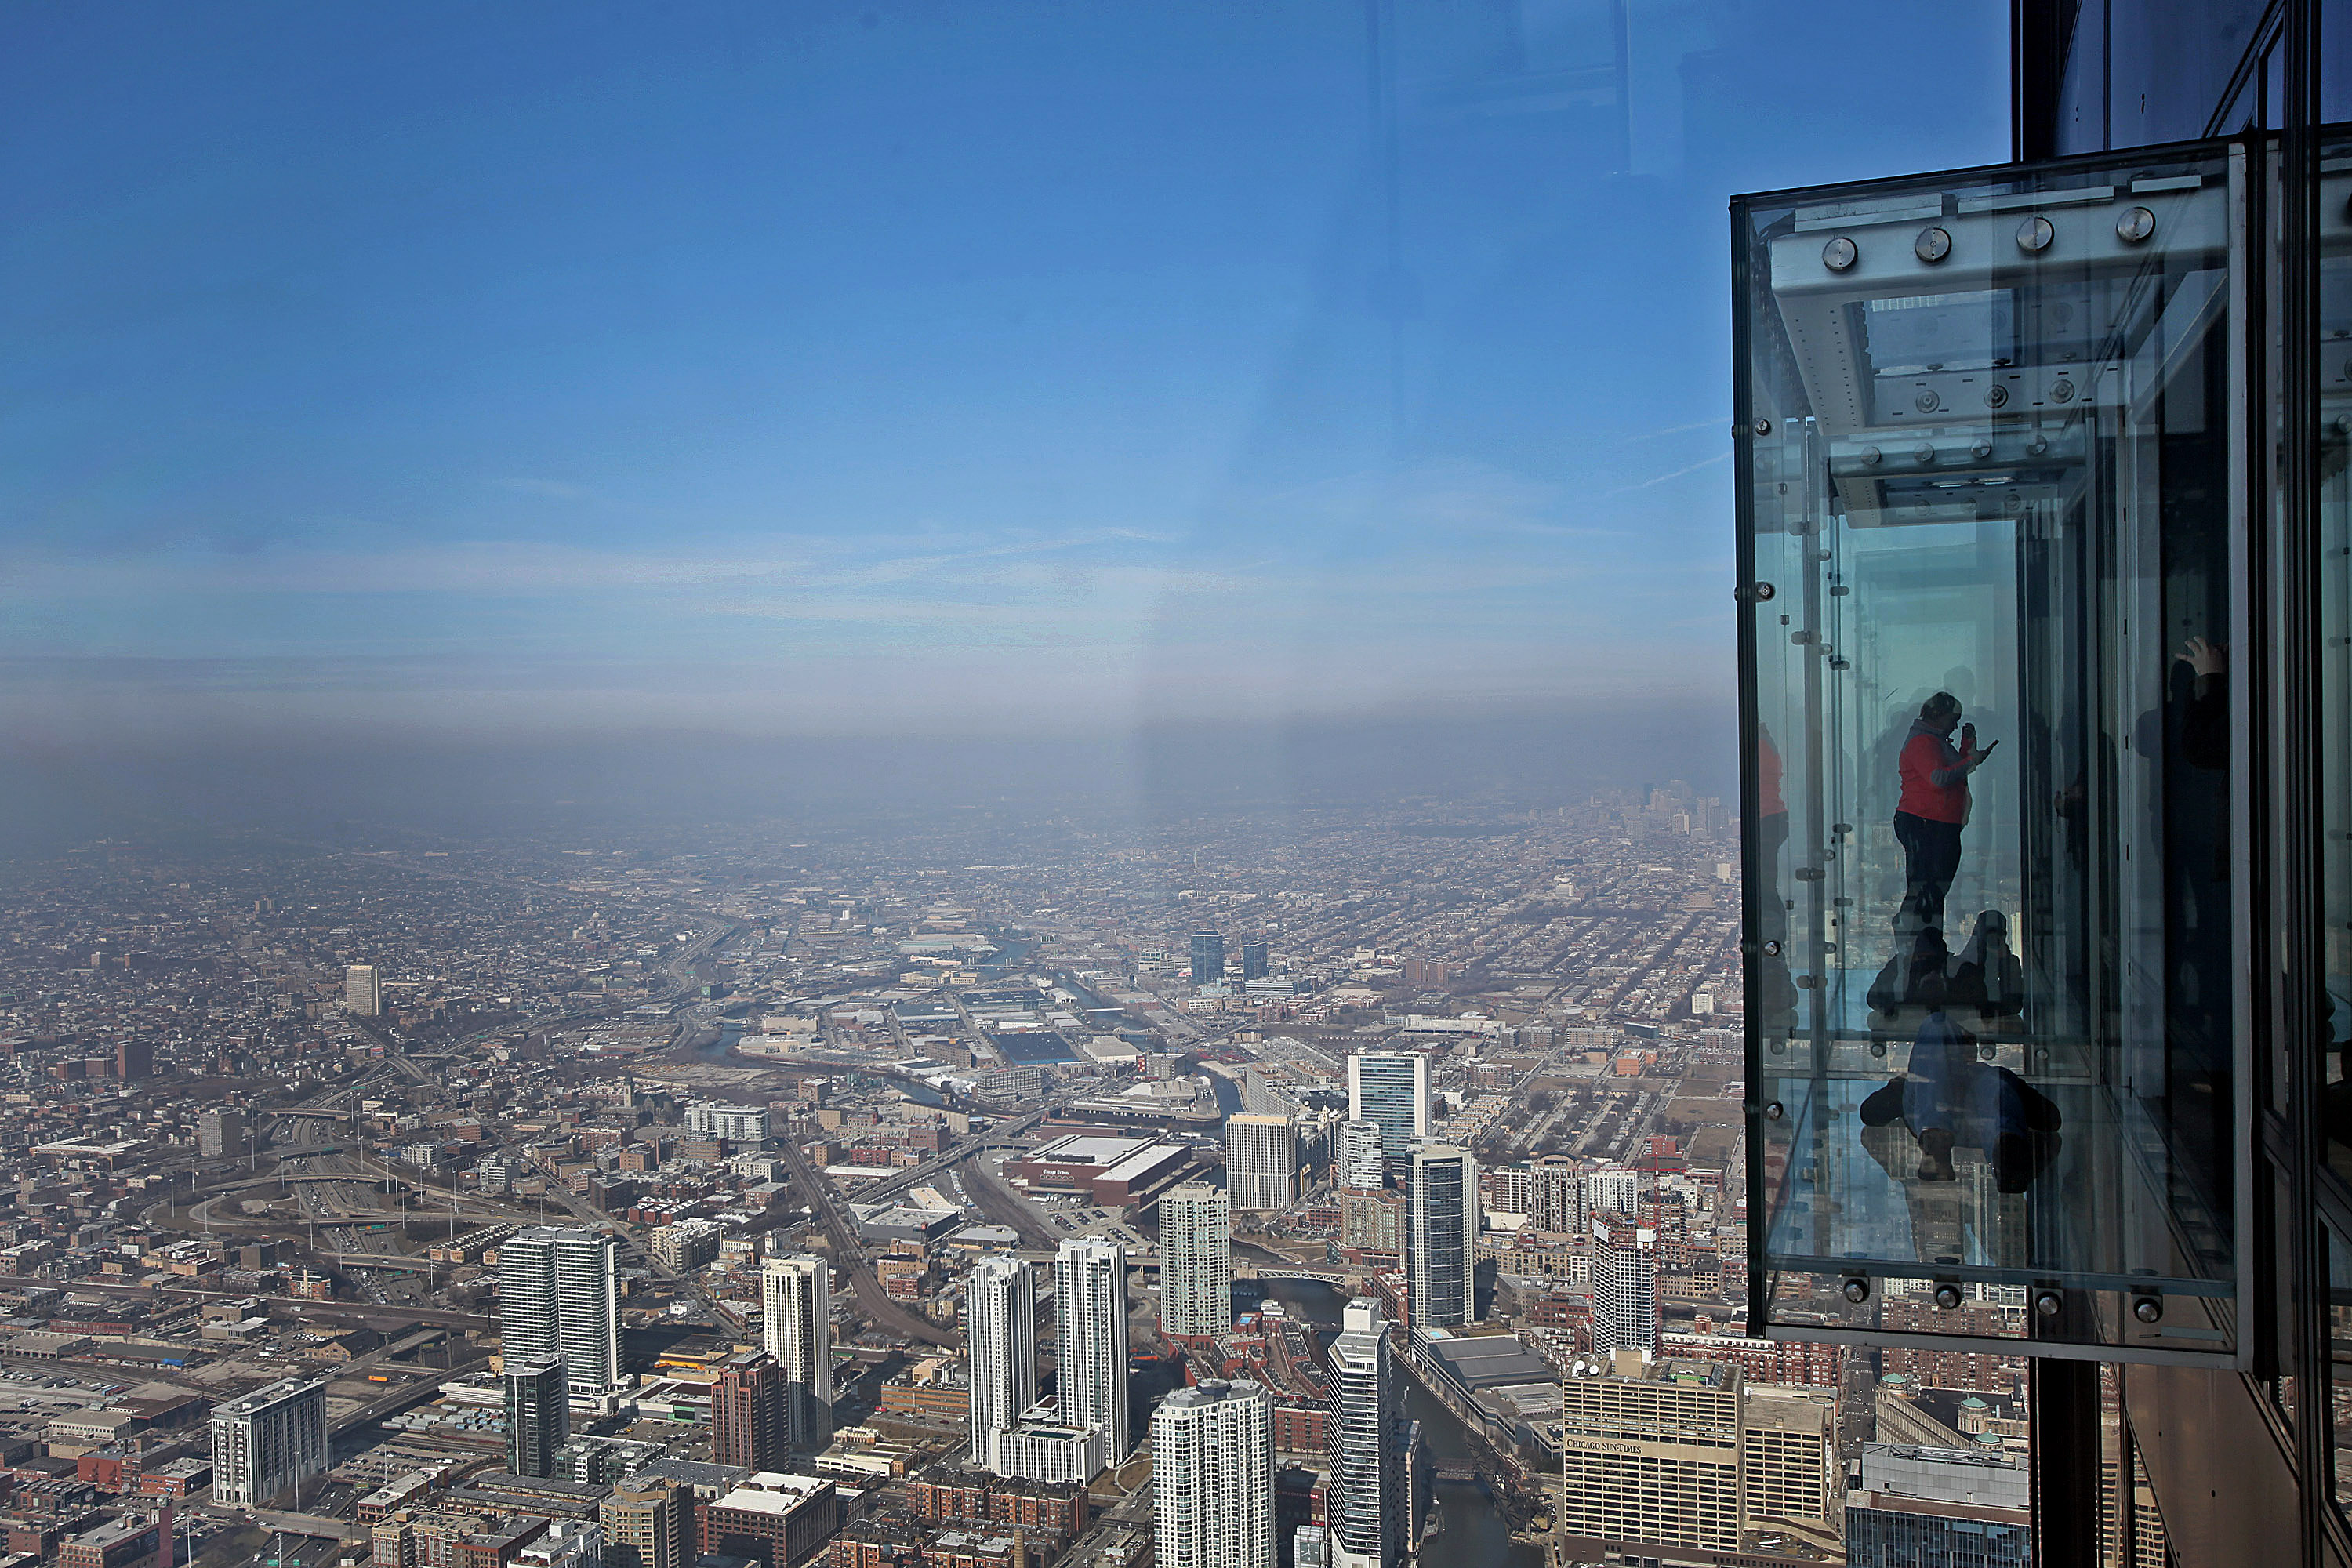 Visitors stand on the glass balcony at the skydeck of the Willis Tower in Chicago, Illinois, U.S., on Wednesday, Feb. 13, 2013.